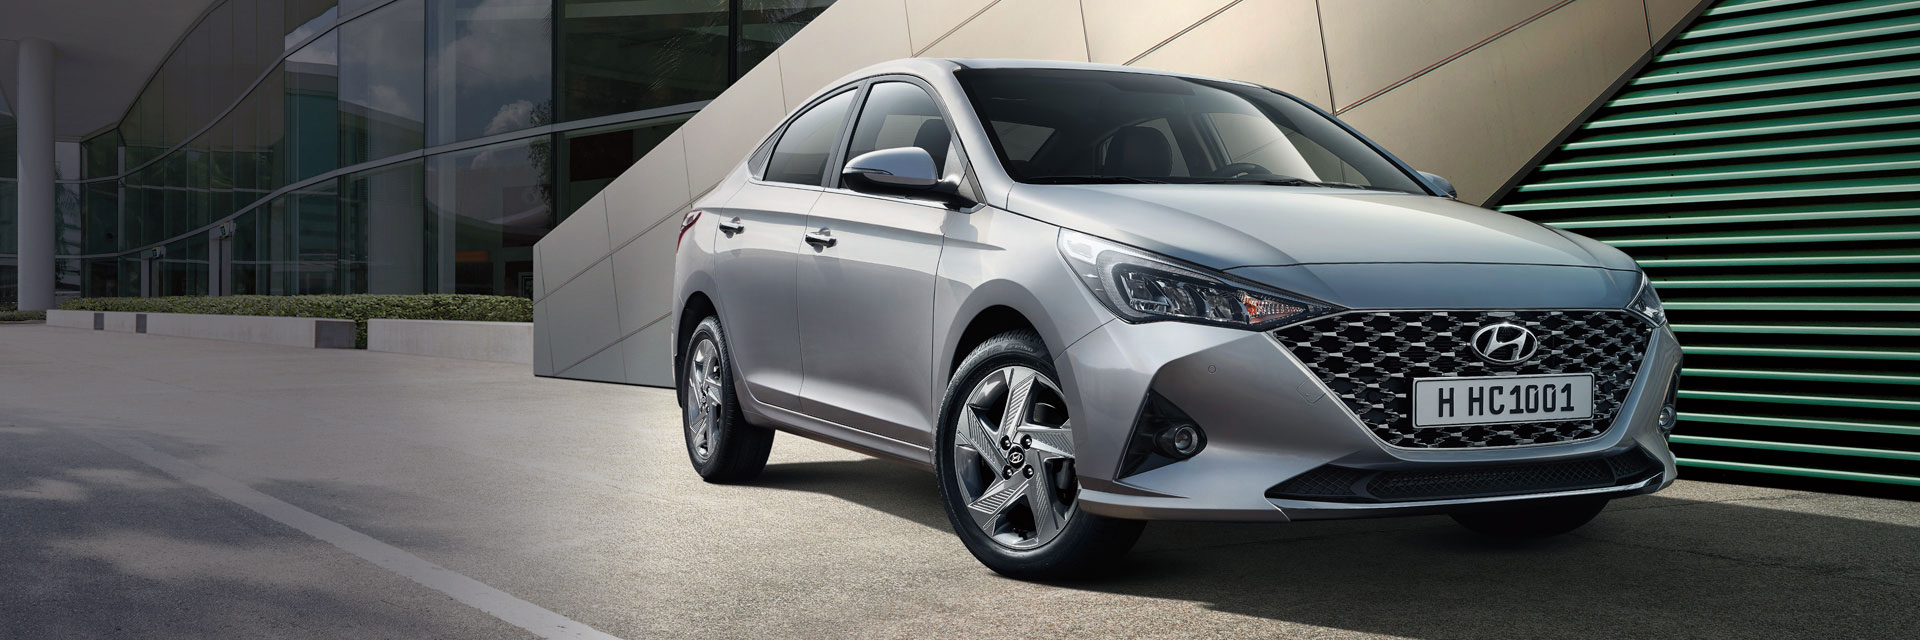 All-new ACCENT